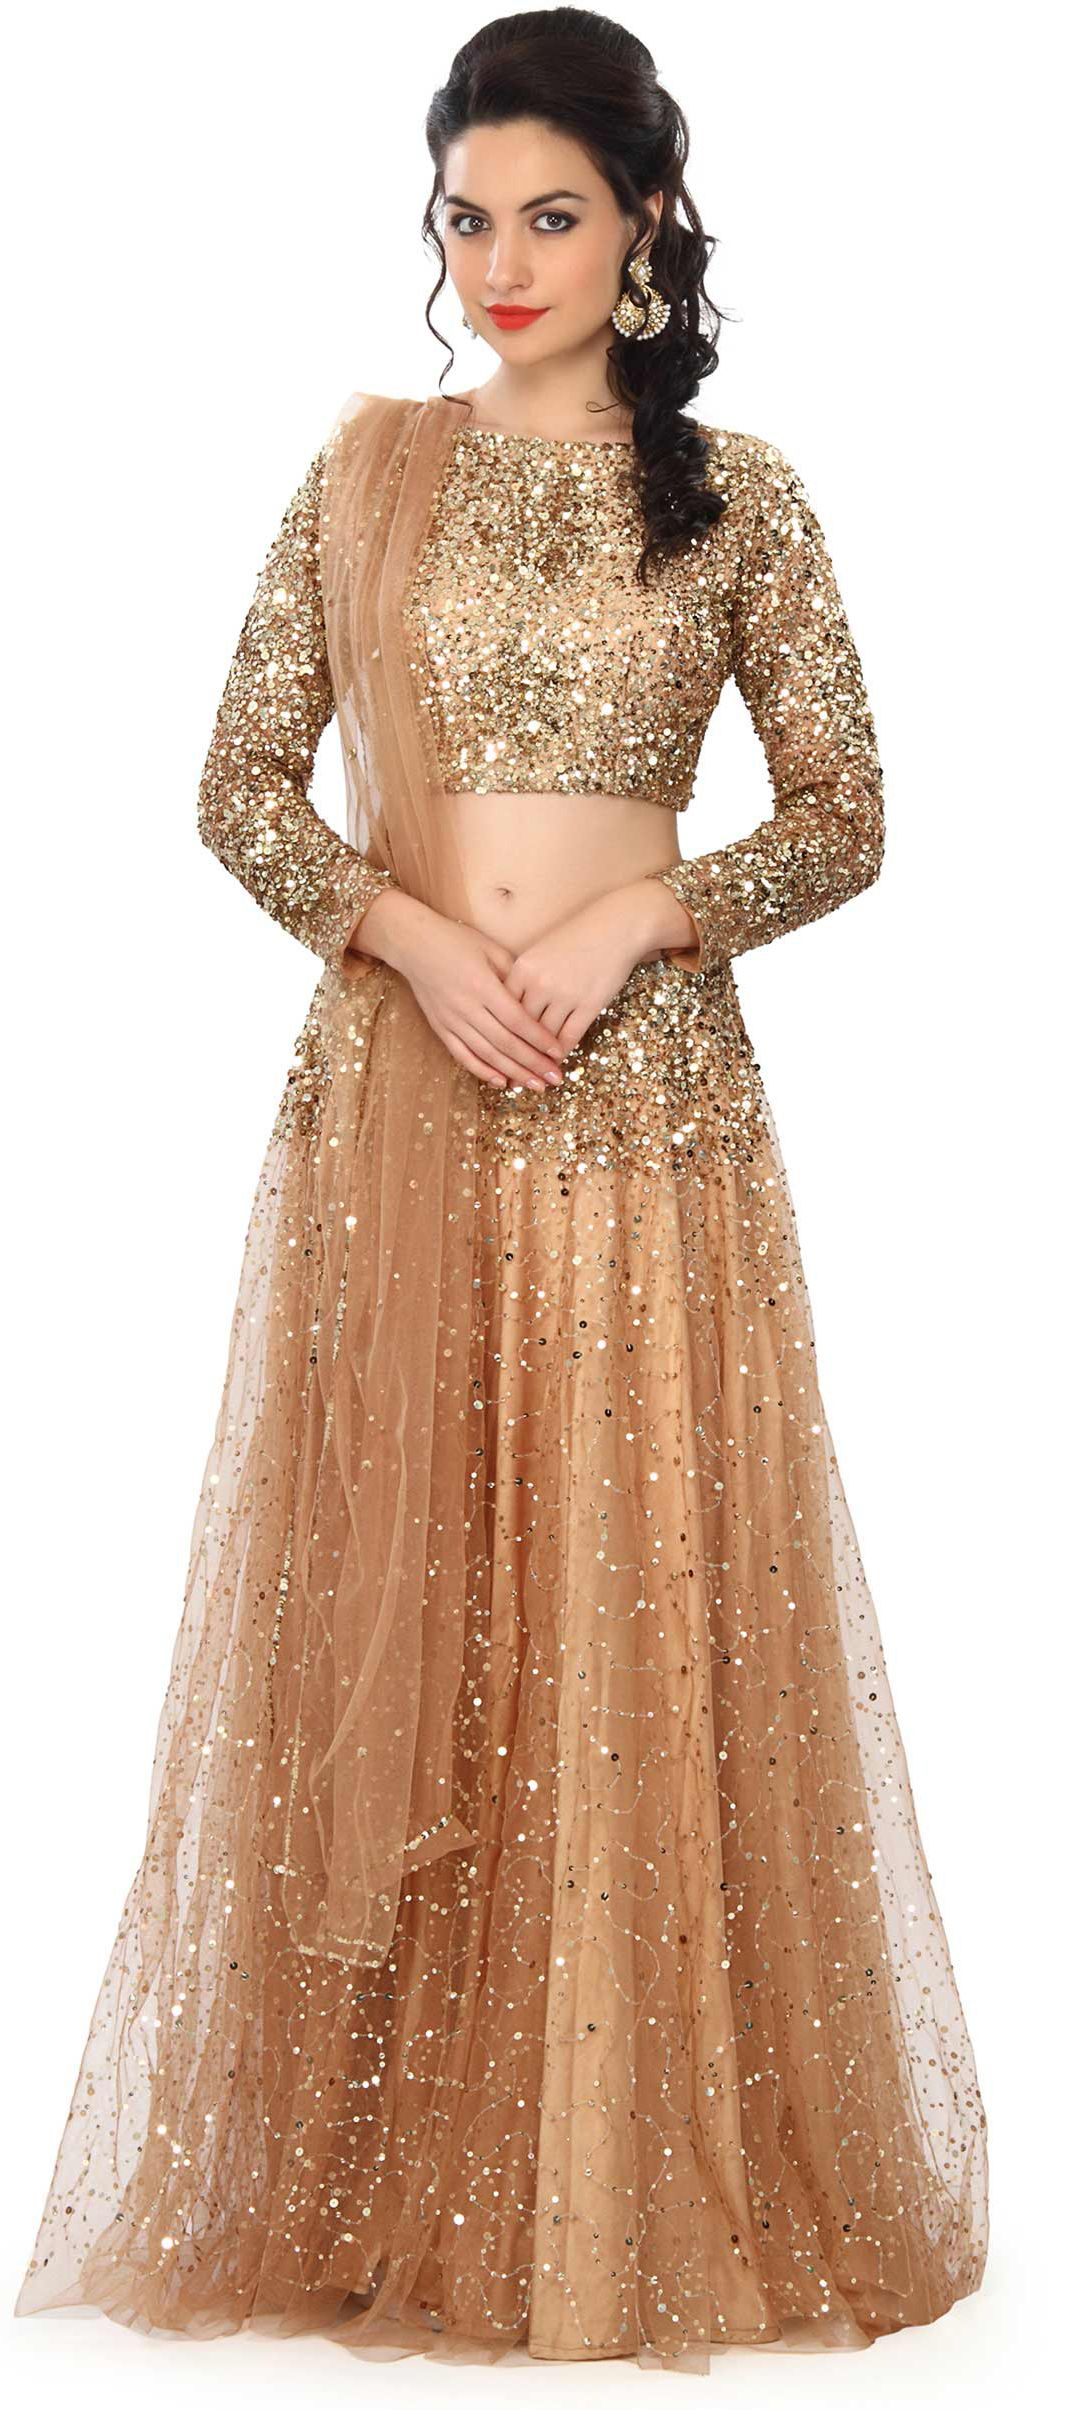 ae46cb648a9 Latest Lehenga Choli Trends Designs Collection which consist of best  designs   styles of party